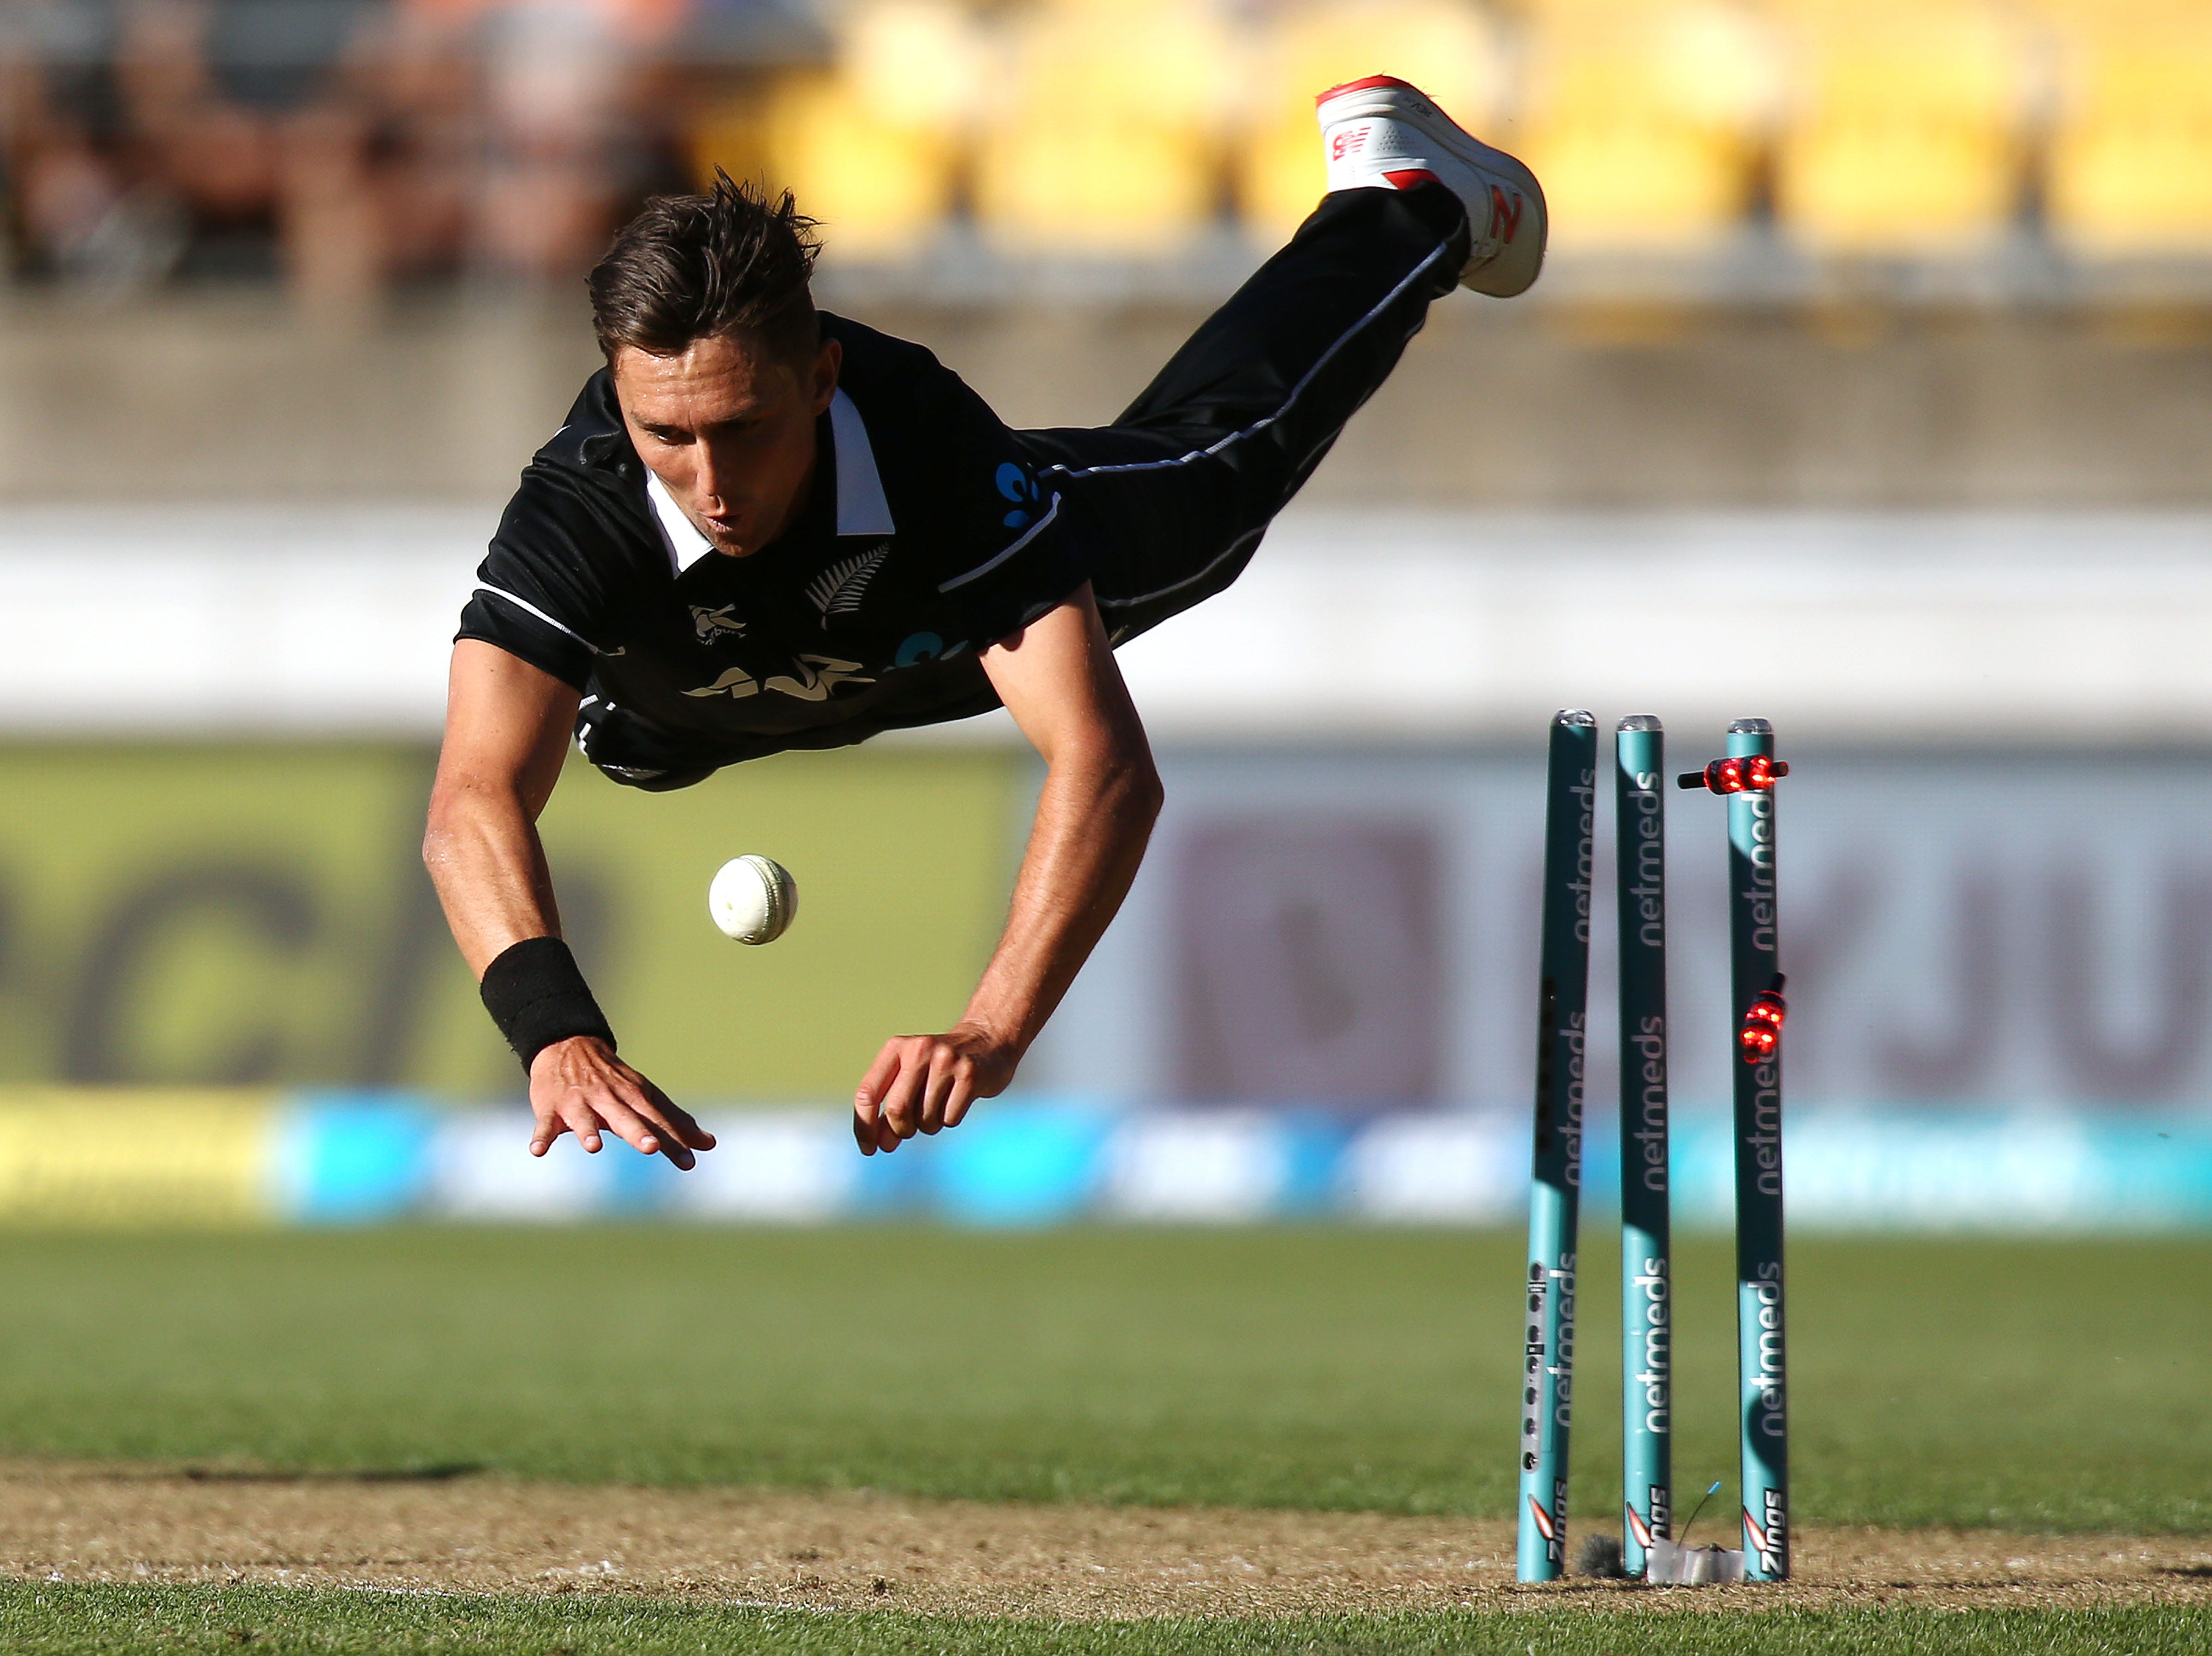 Trent Boult of New Zealand takes the wicket of Yuzvendra Chahal of India during game five in the One Day International series between New Zealand and India at Westpac Stadium on February 03, 2019 in Wellington, New Zealand.